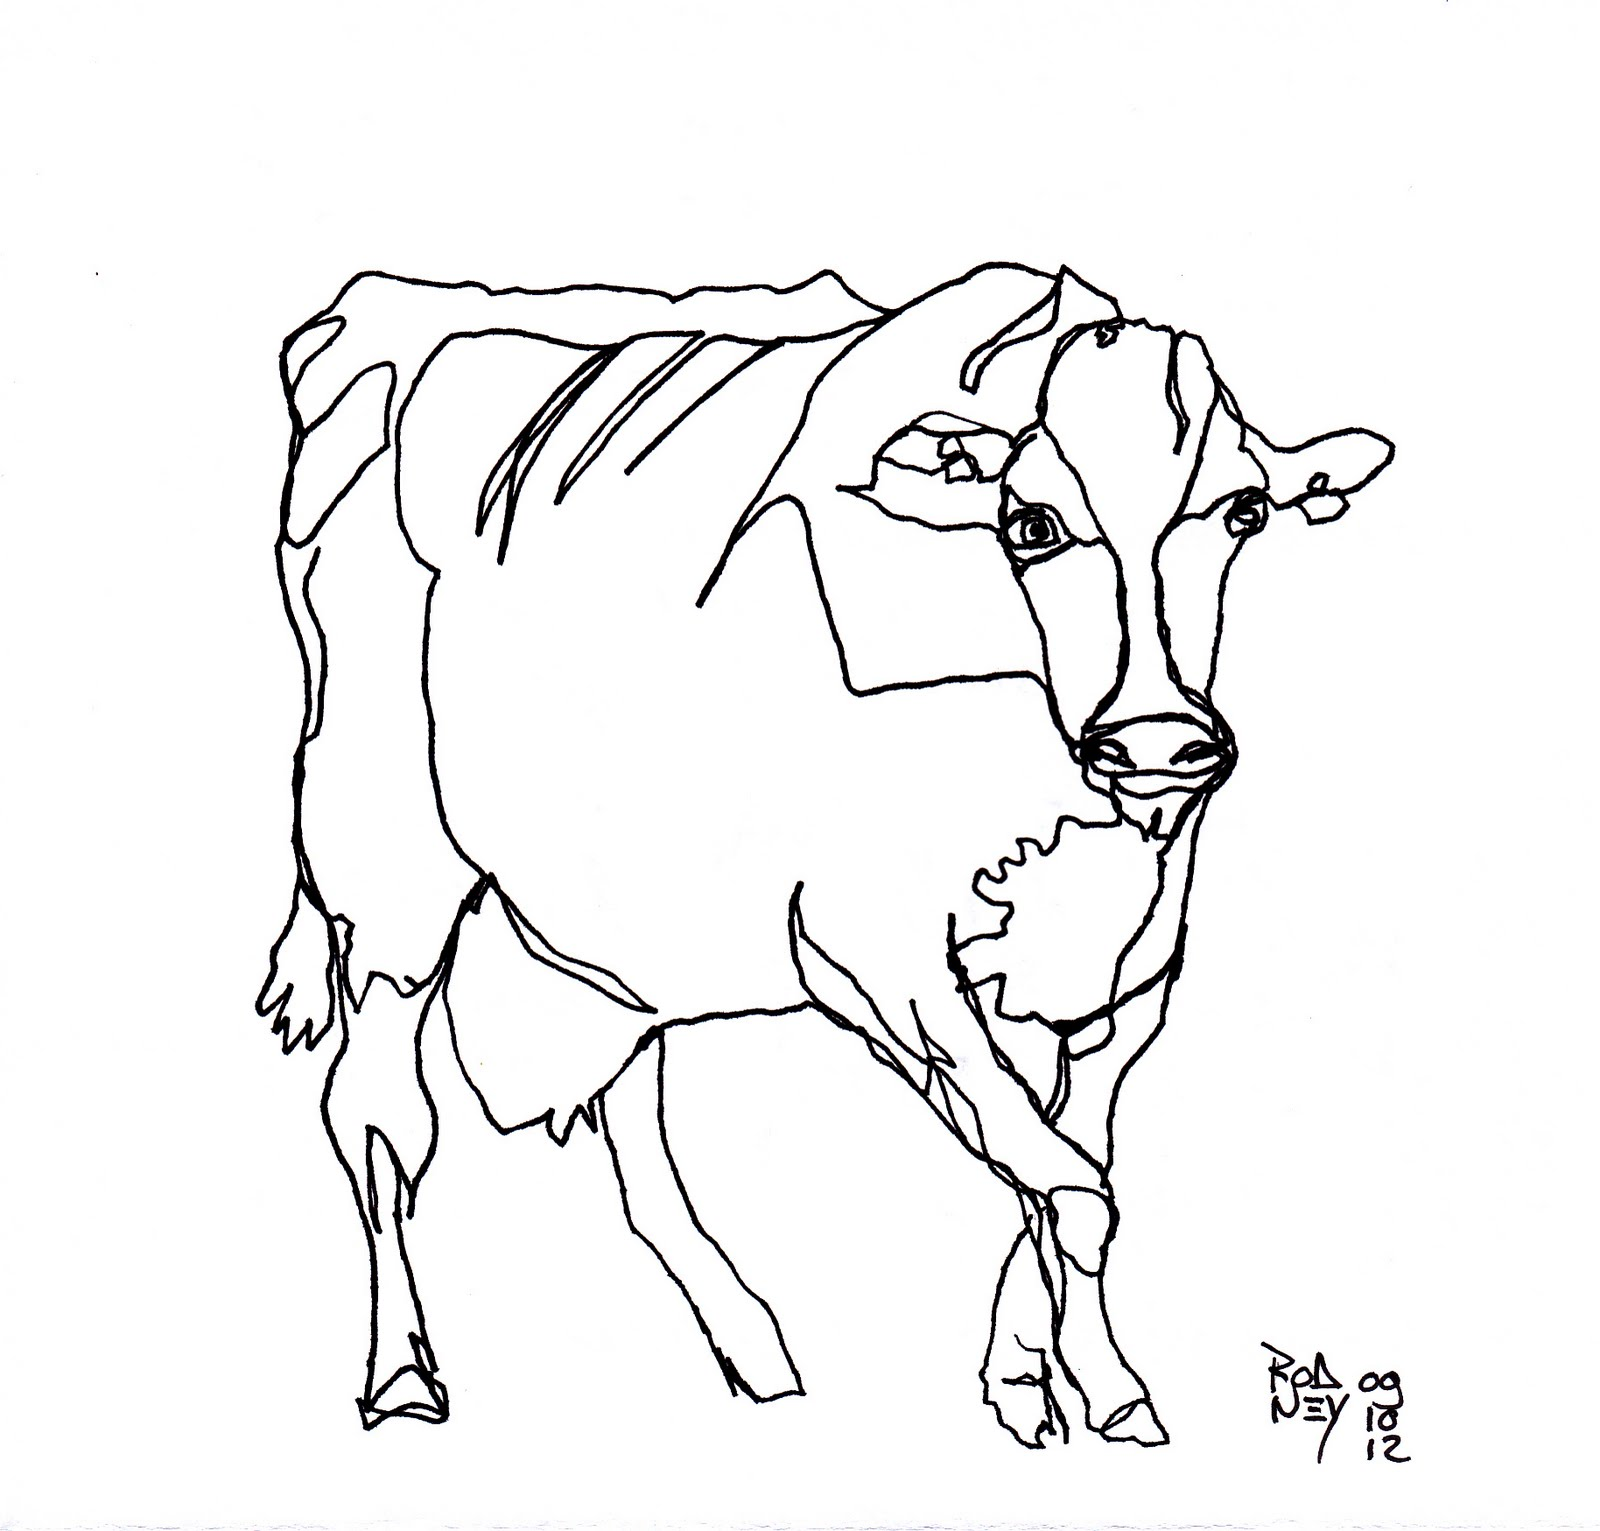 Cat Contour Line Drawing : Rodney van den beemd continuous cow